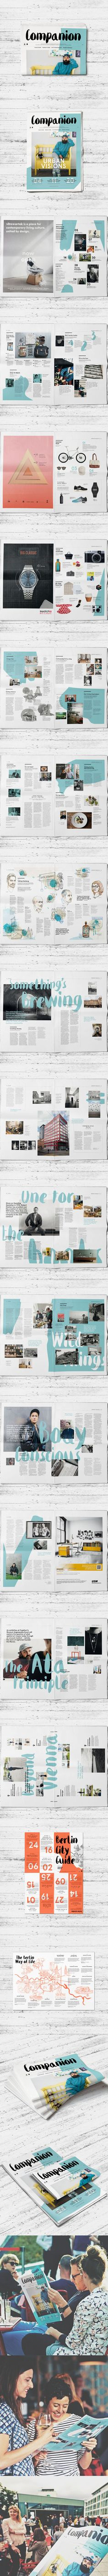 Companion Magazine #02 by Stefan Schuster, via Behance